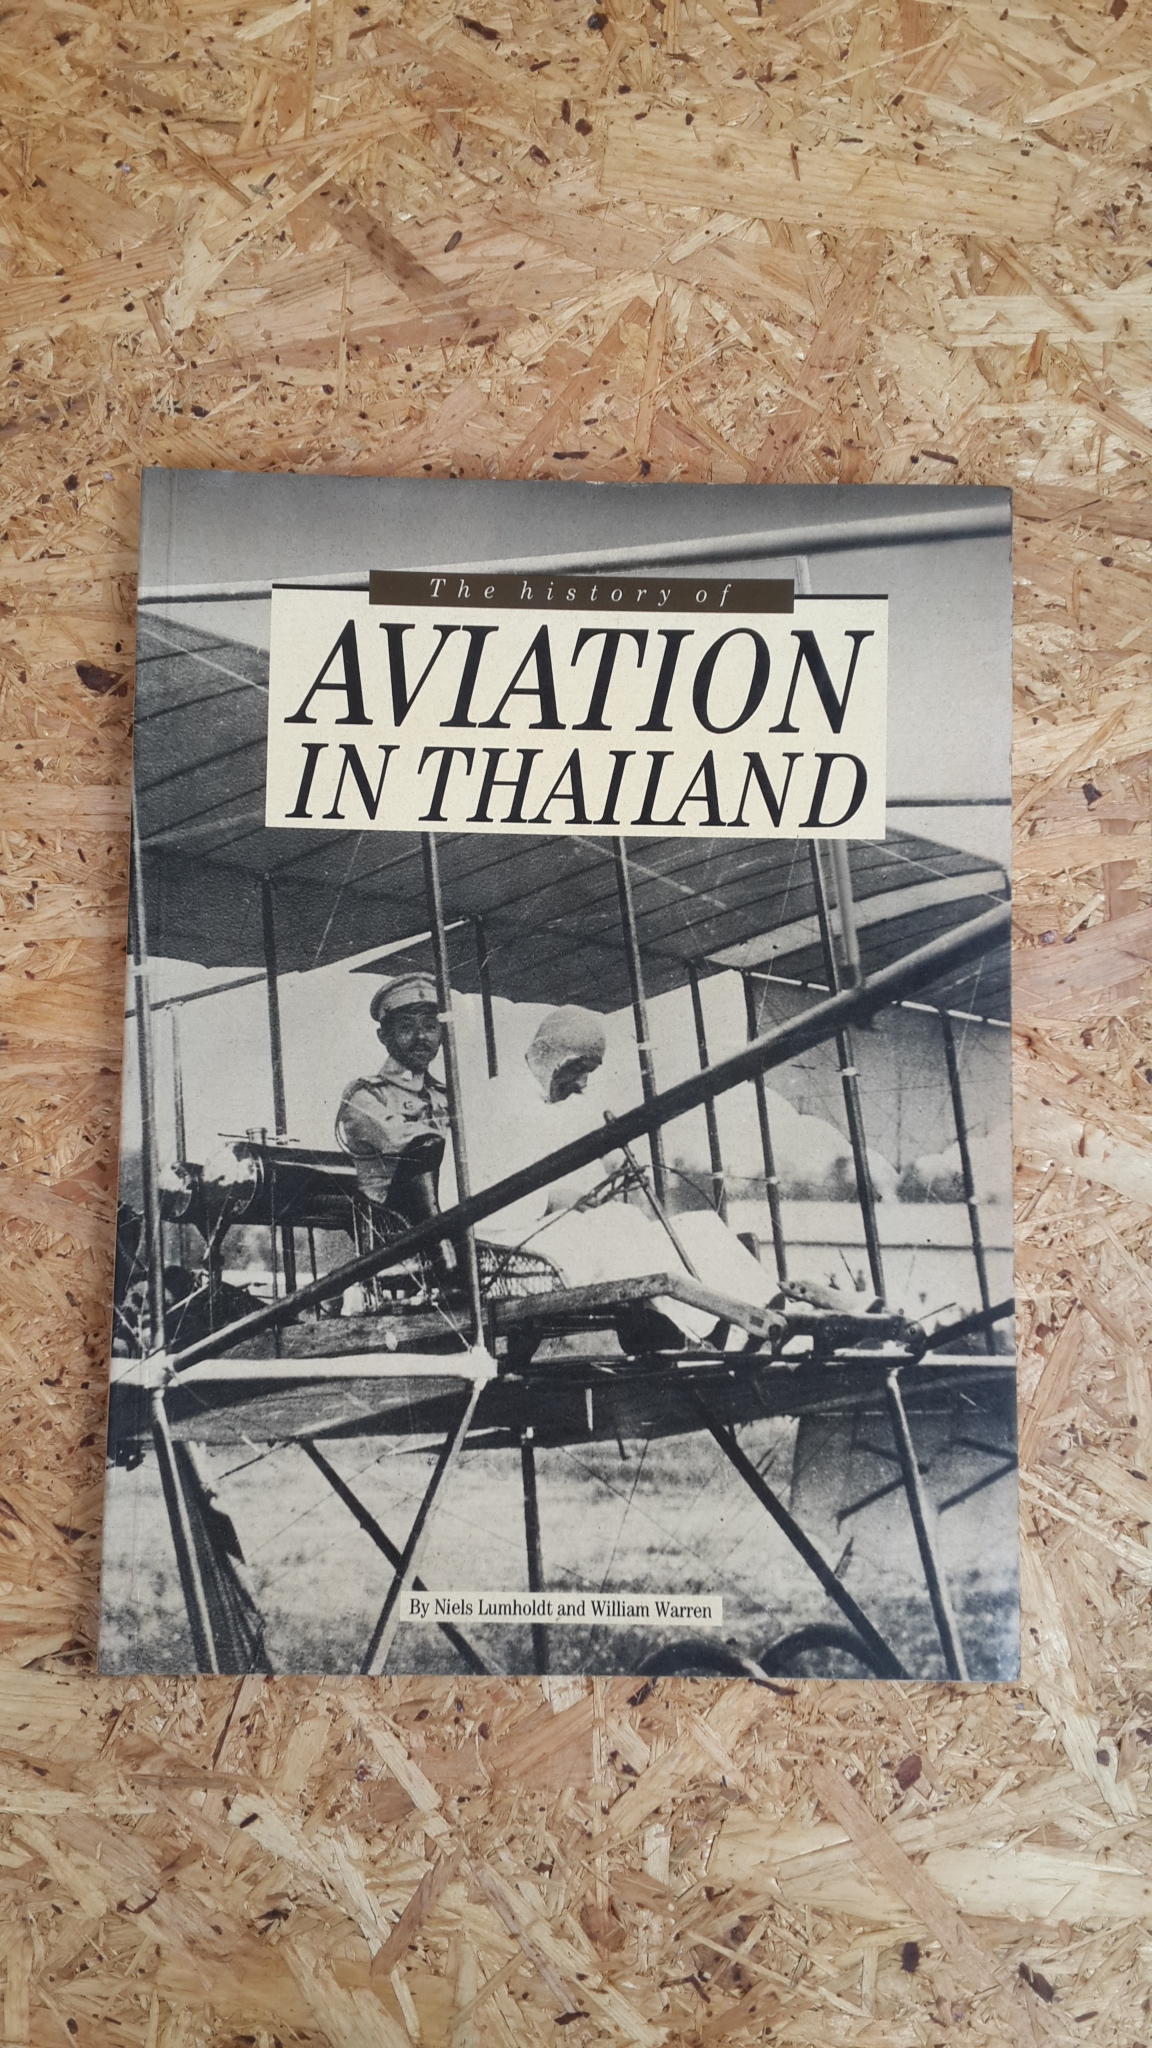 The history of AVIATION IN THAILAND